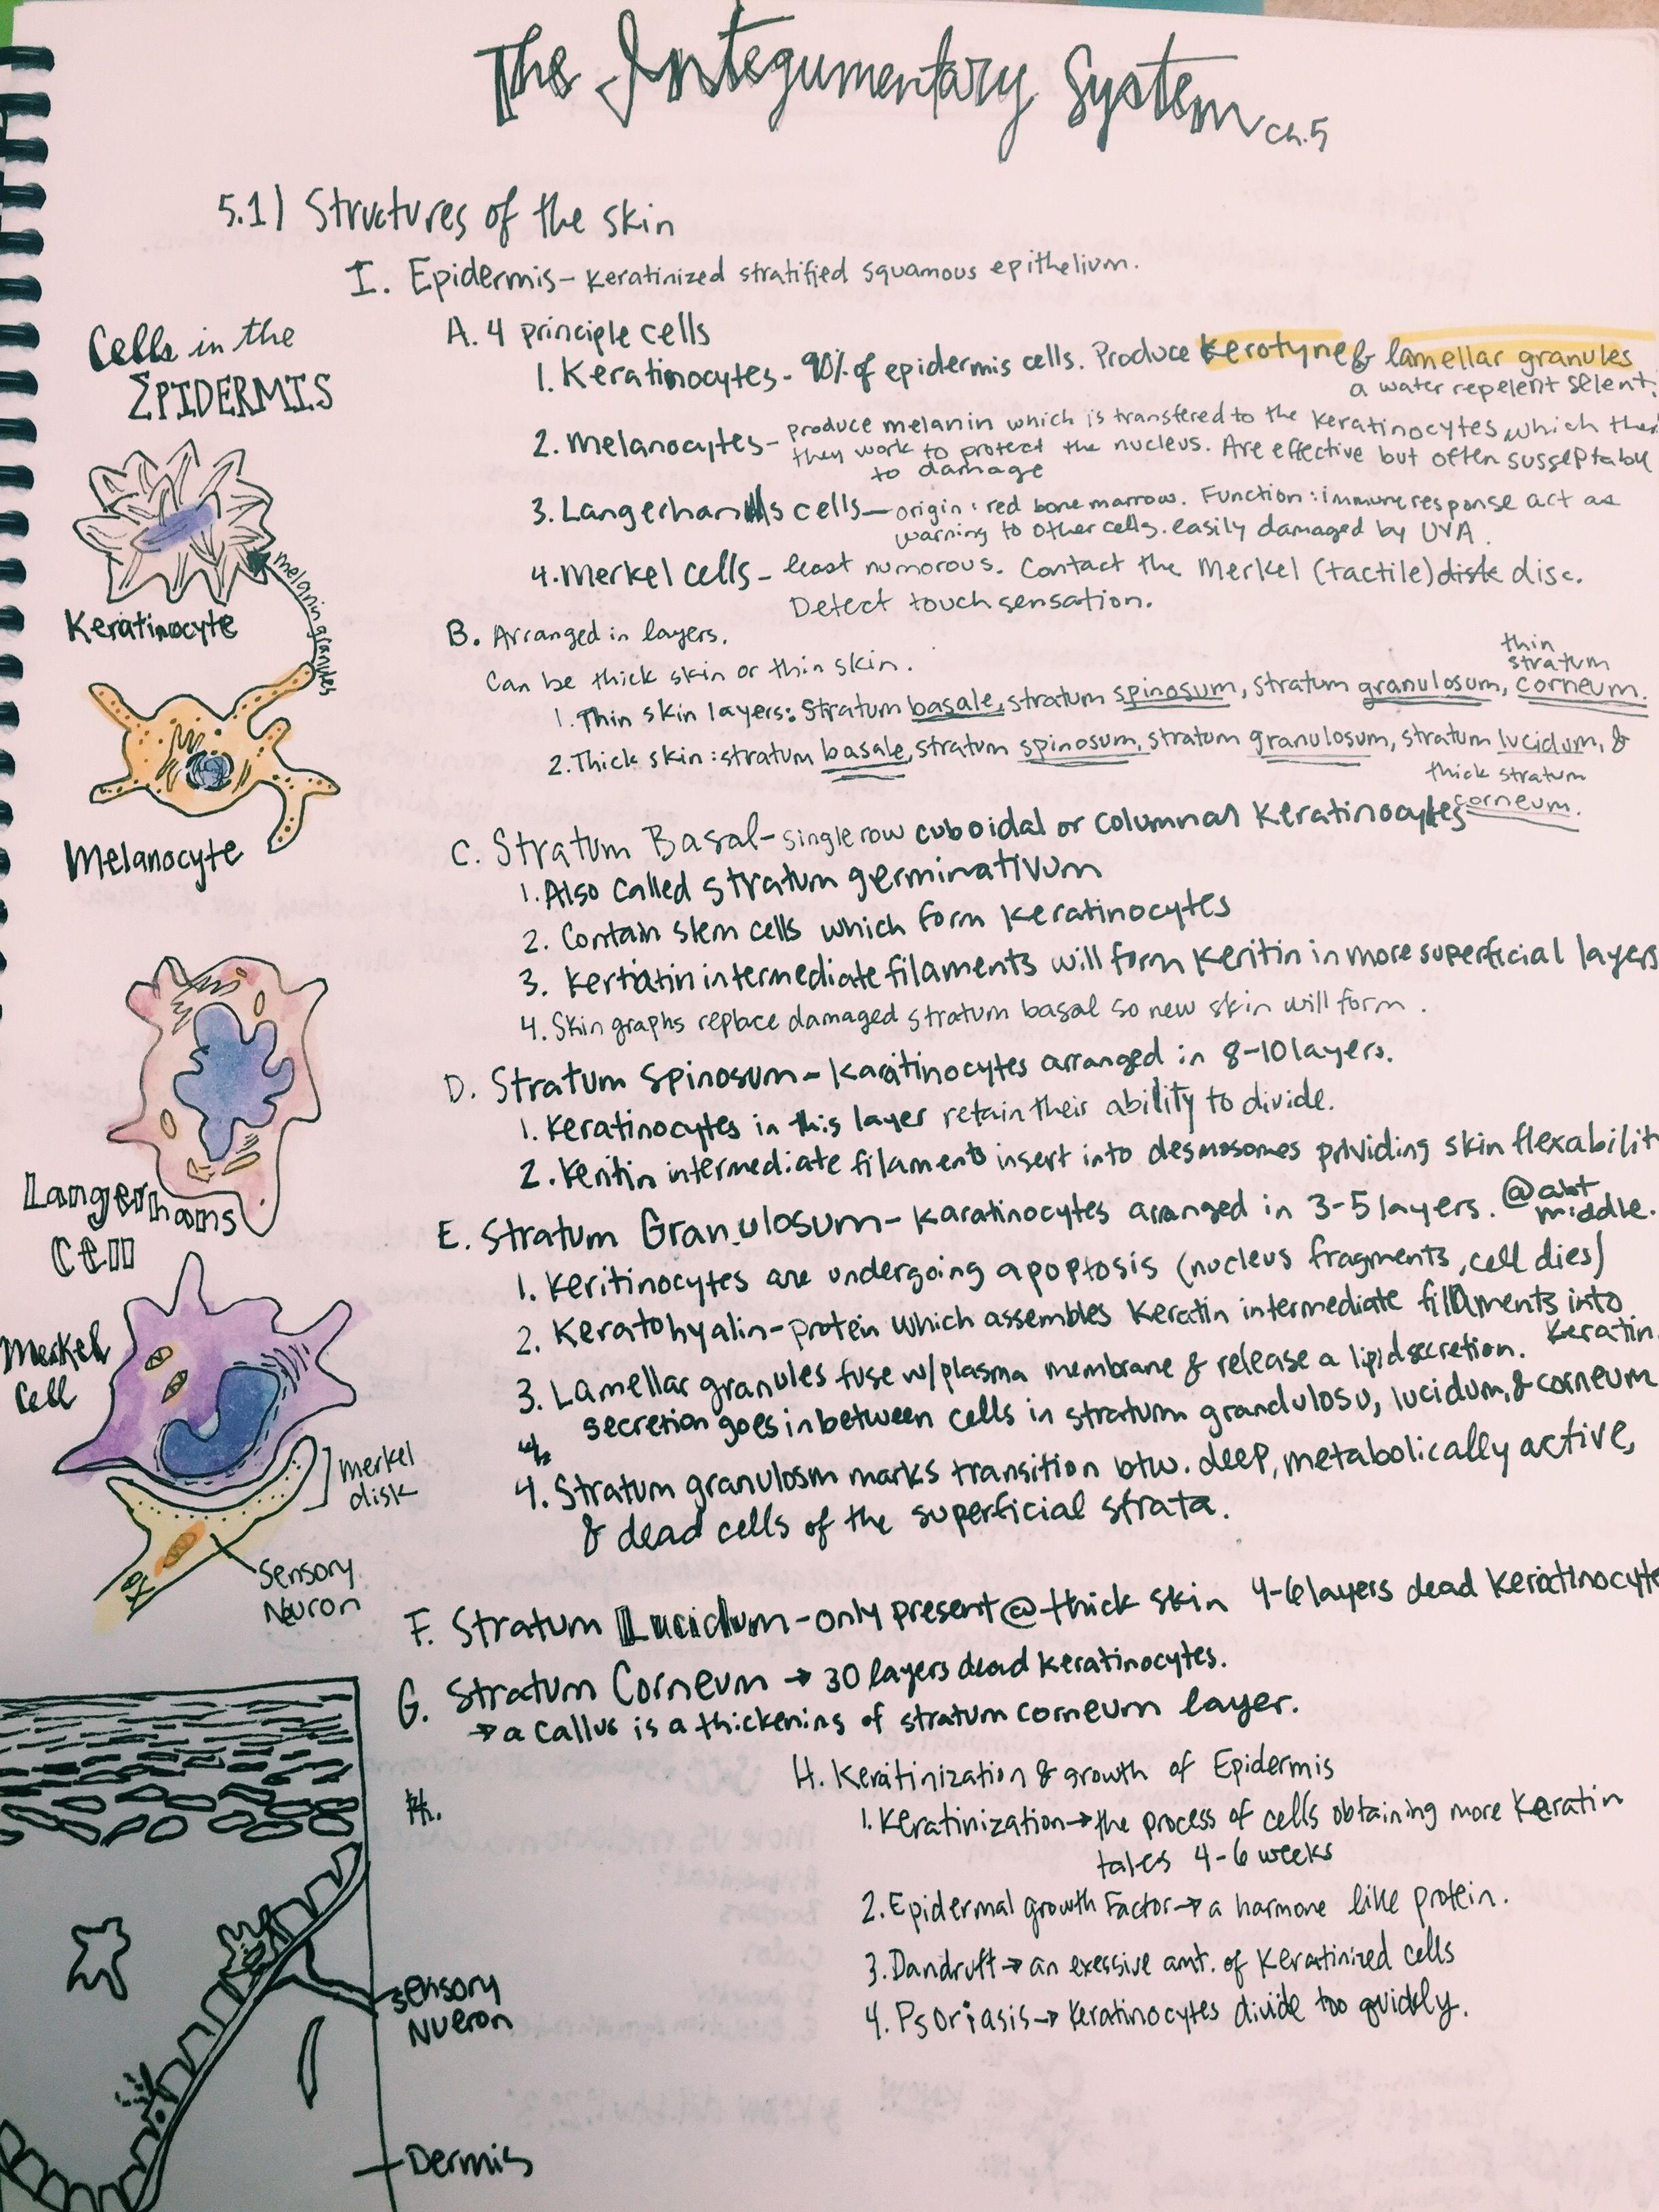 Human Anatomy And Physiology Nervous System Notes